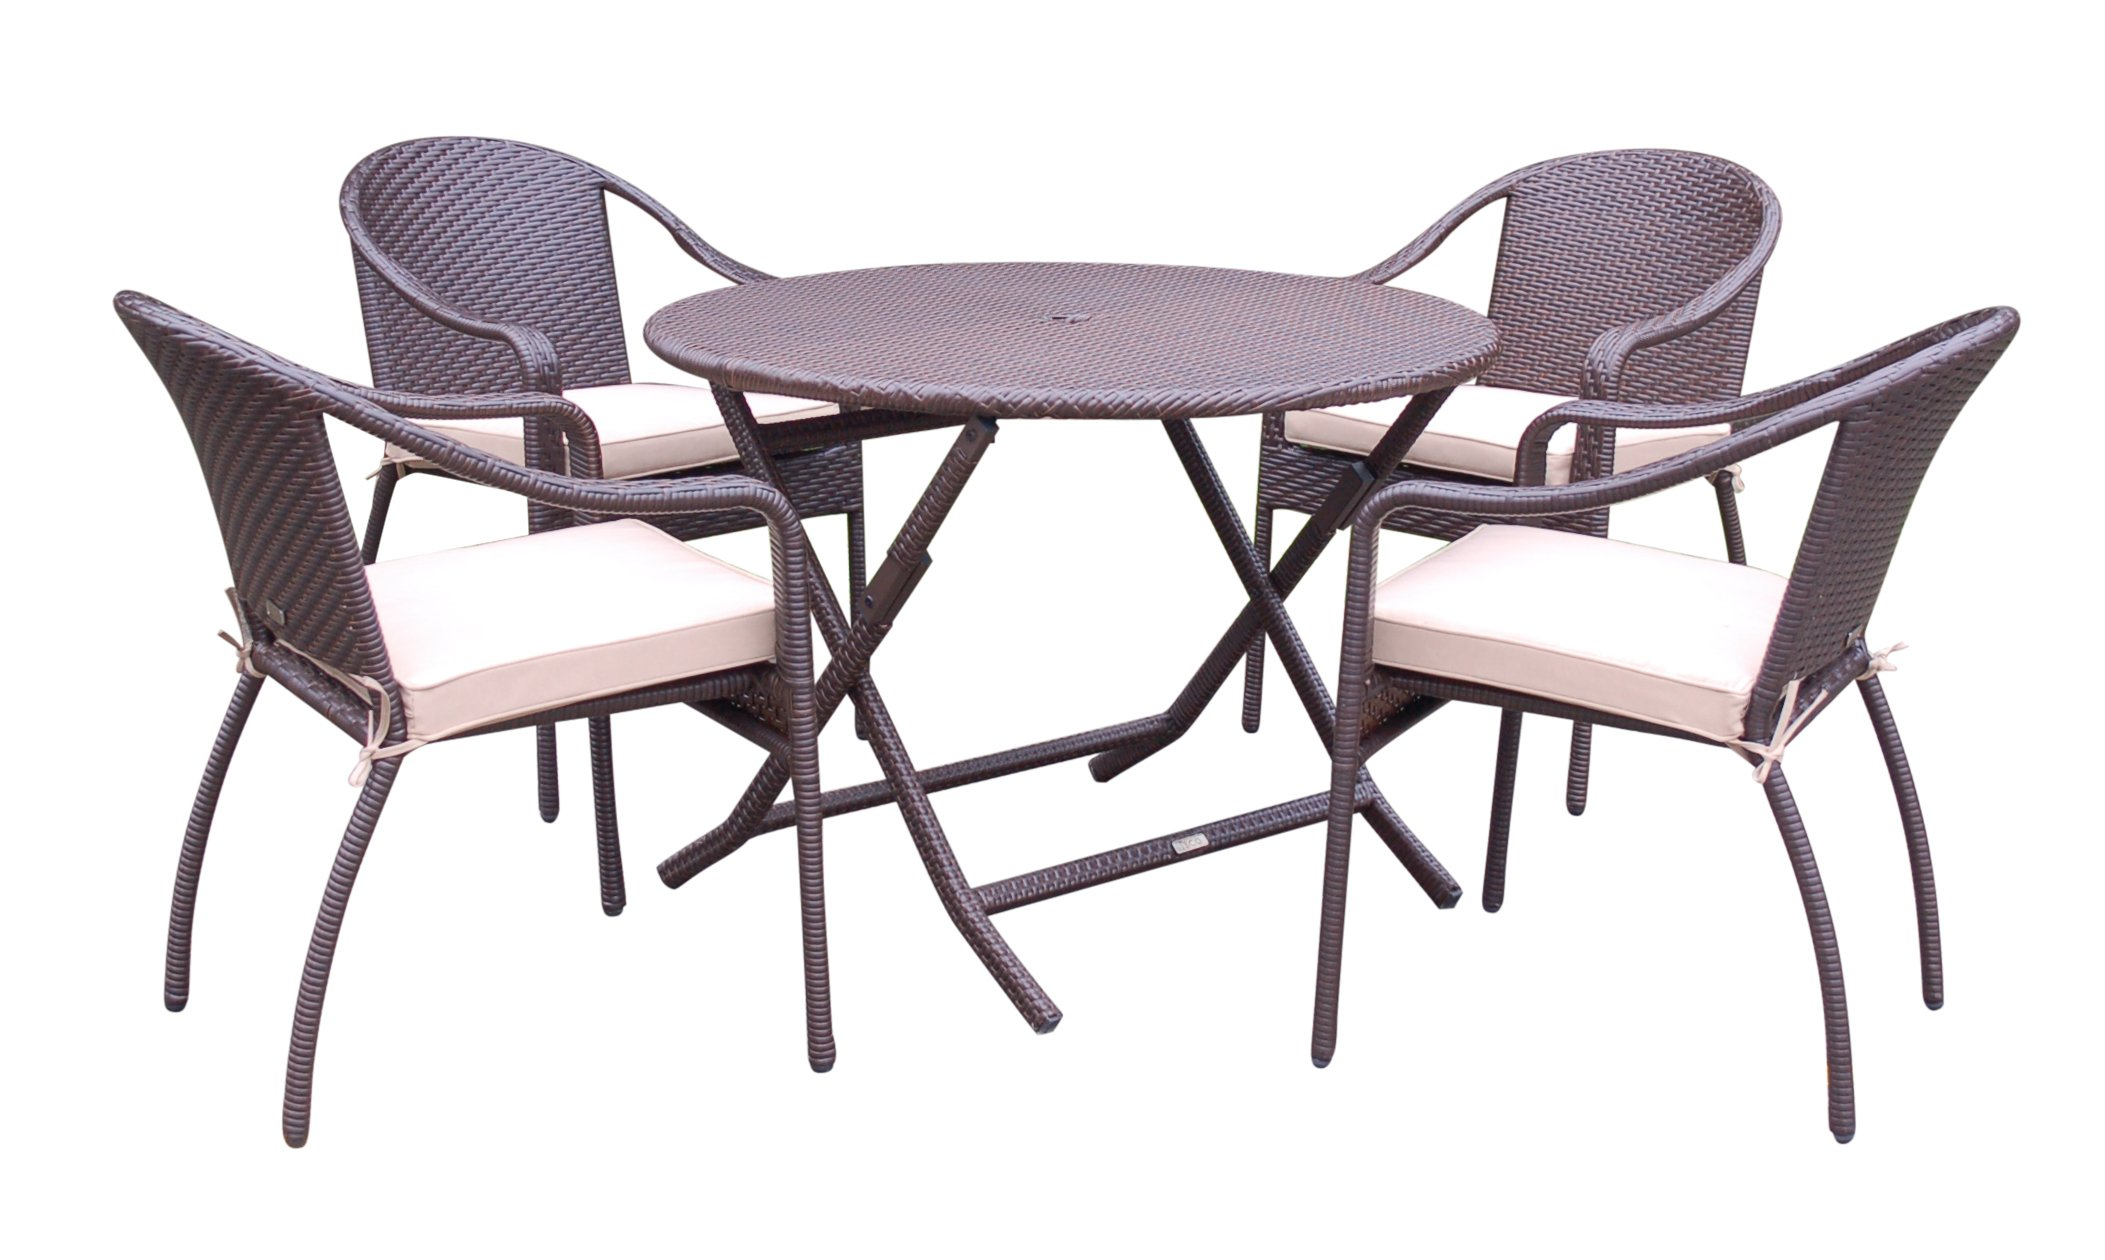 Jeco W00501R-G-FS006 5 Piece Cafe Curved Back Chairs and Folding Wicker Table, Espresso by Jeco (Image #1)